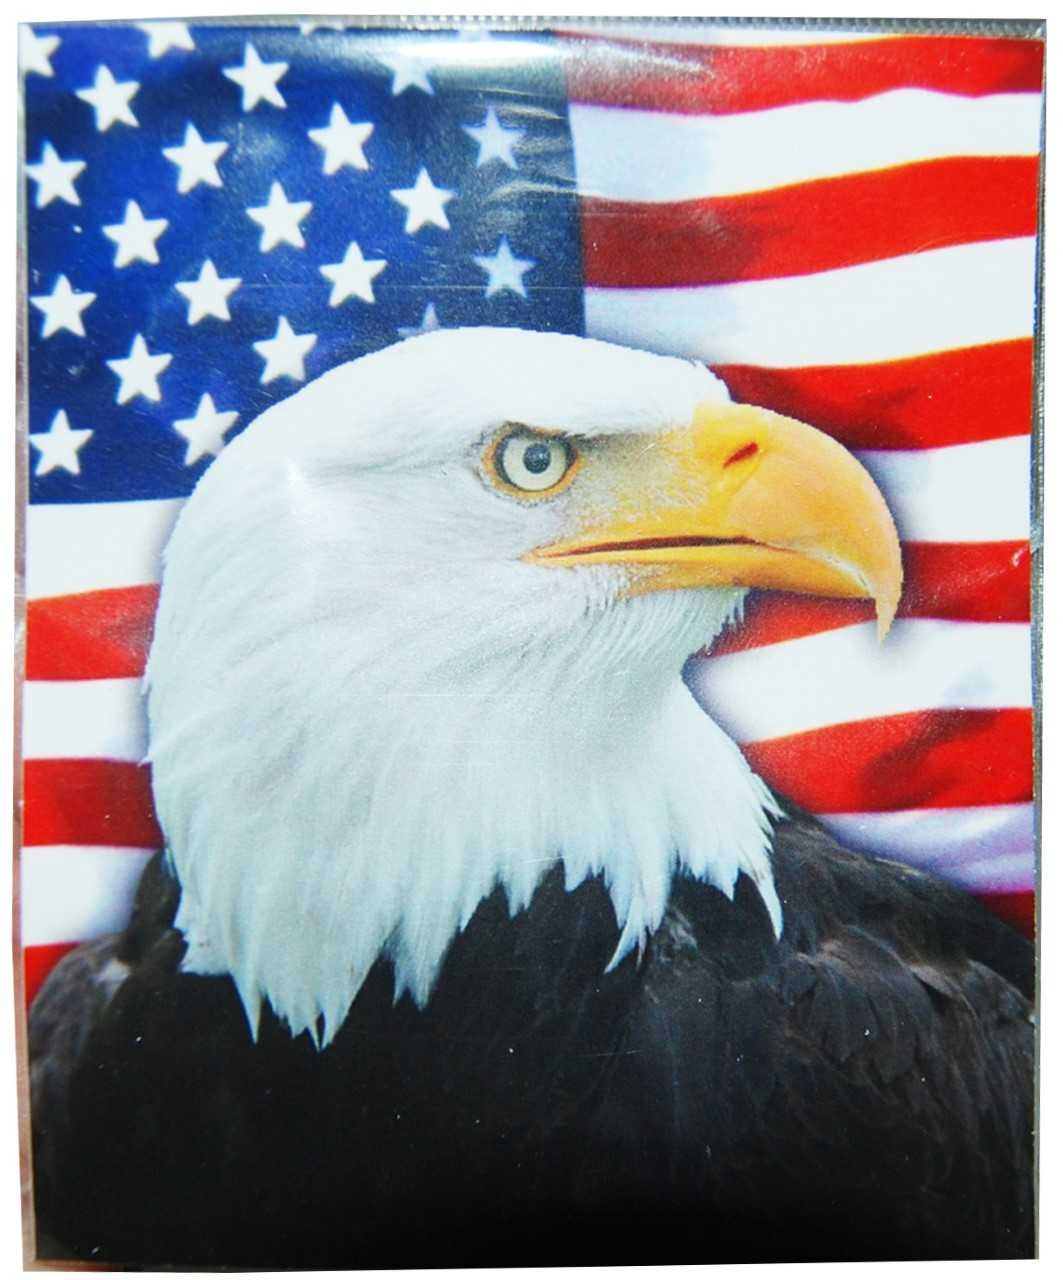 All American USA Fun Kids Sticker Featuring a Fierce Patriotic Bald Eagle Photo Design CityDreamShop